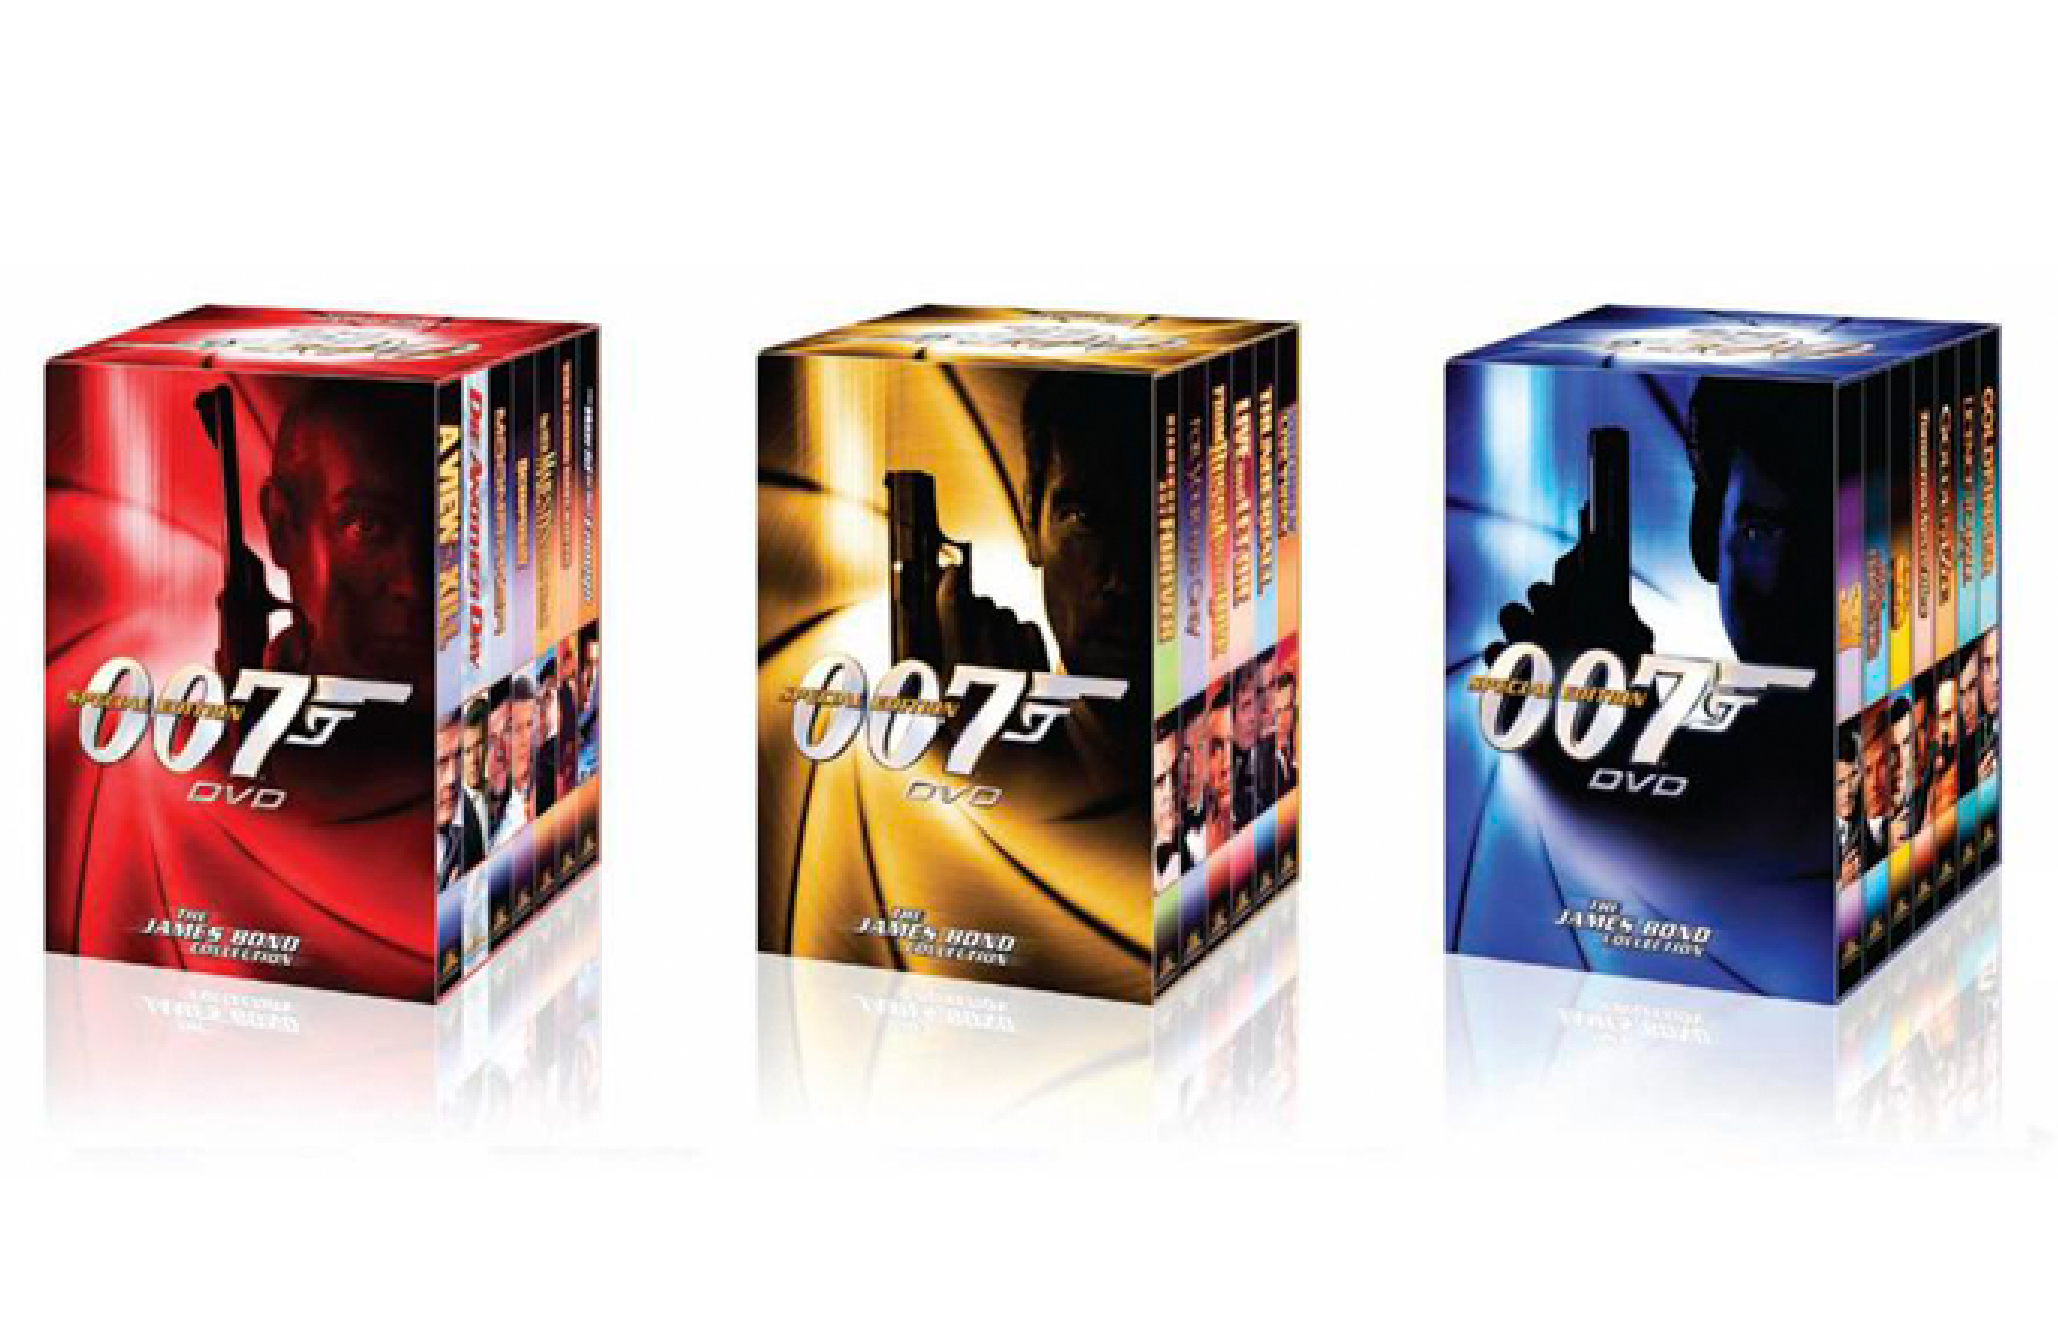 007 Special Edition Box Sets